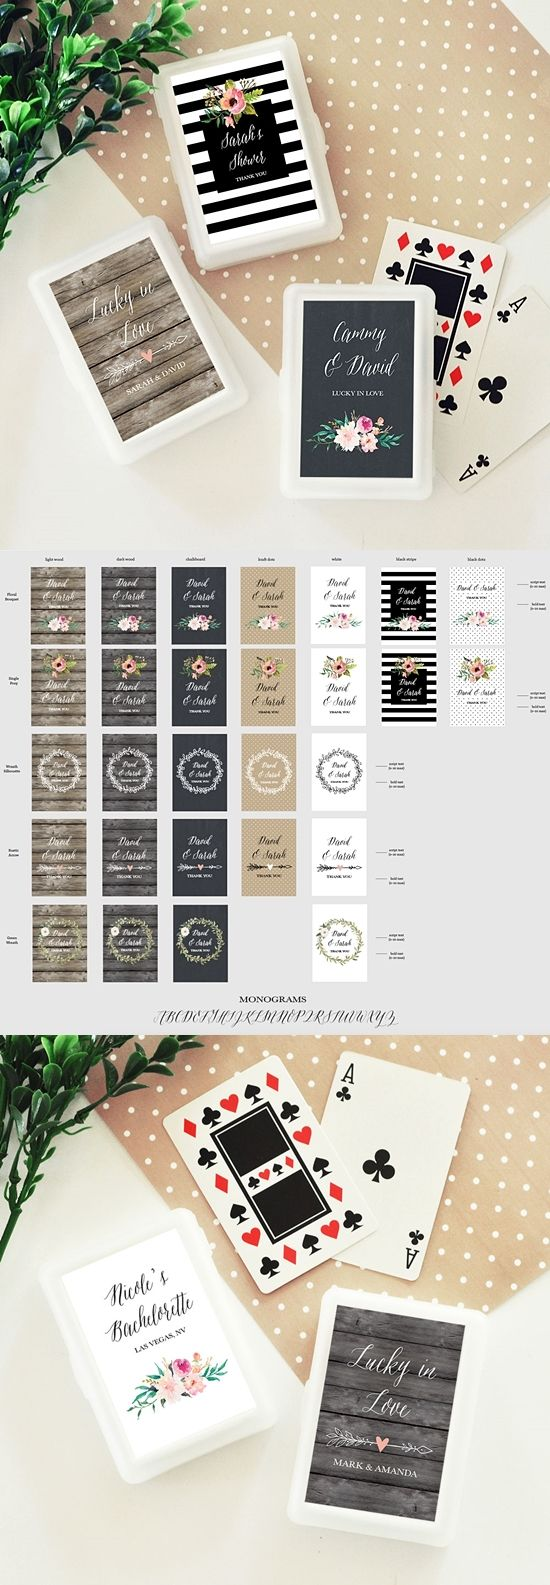 Event Blossom Personalized Playing Cards with Floral Garden Designs | Personalized Gifts and Party Favors